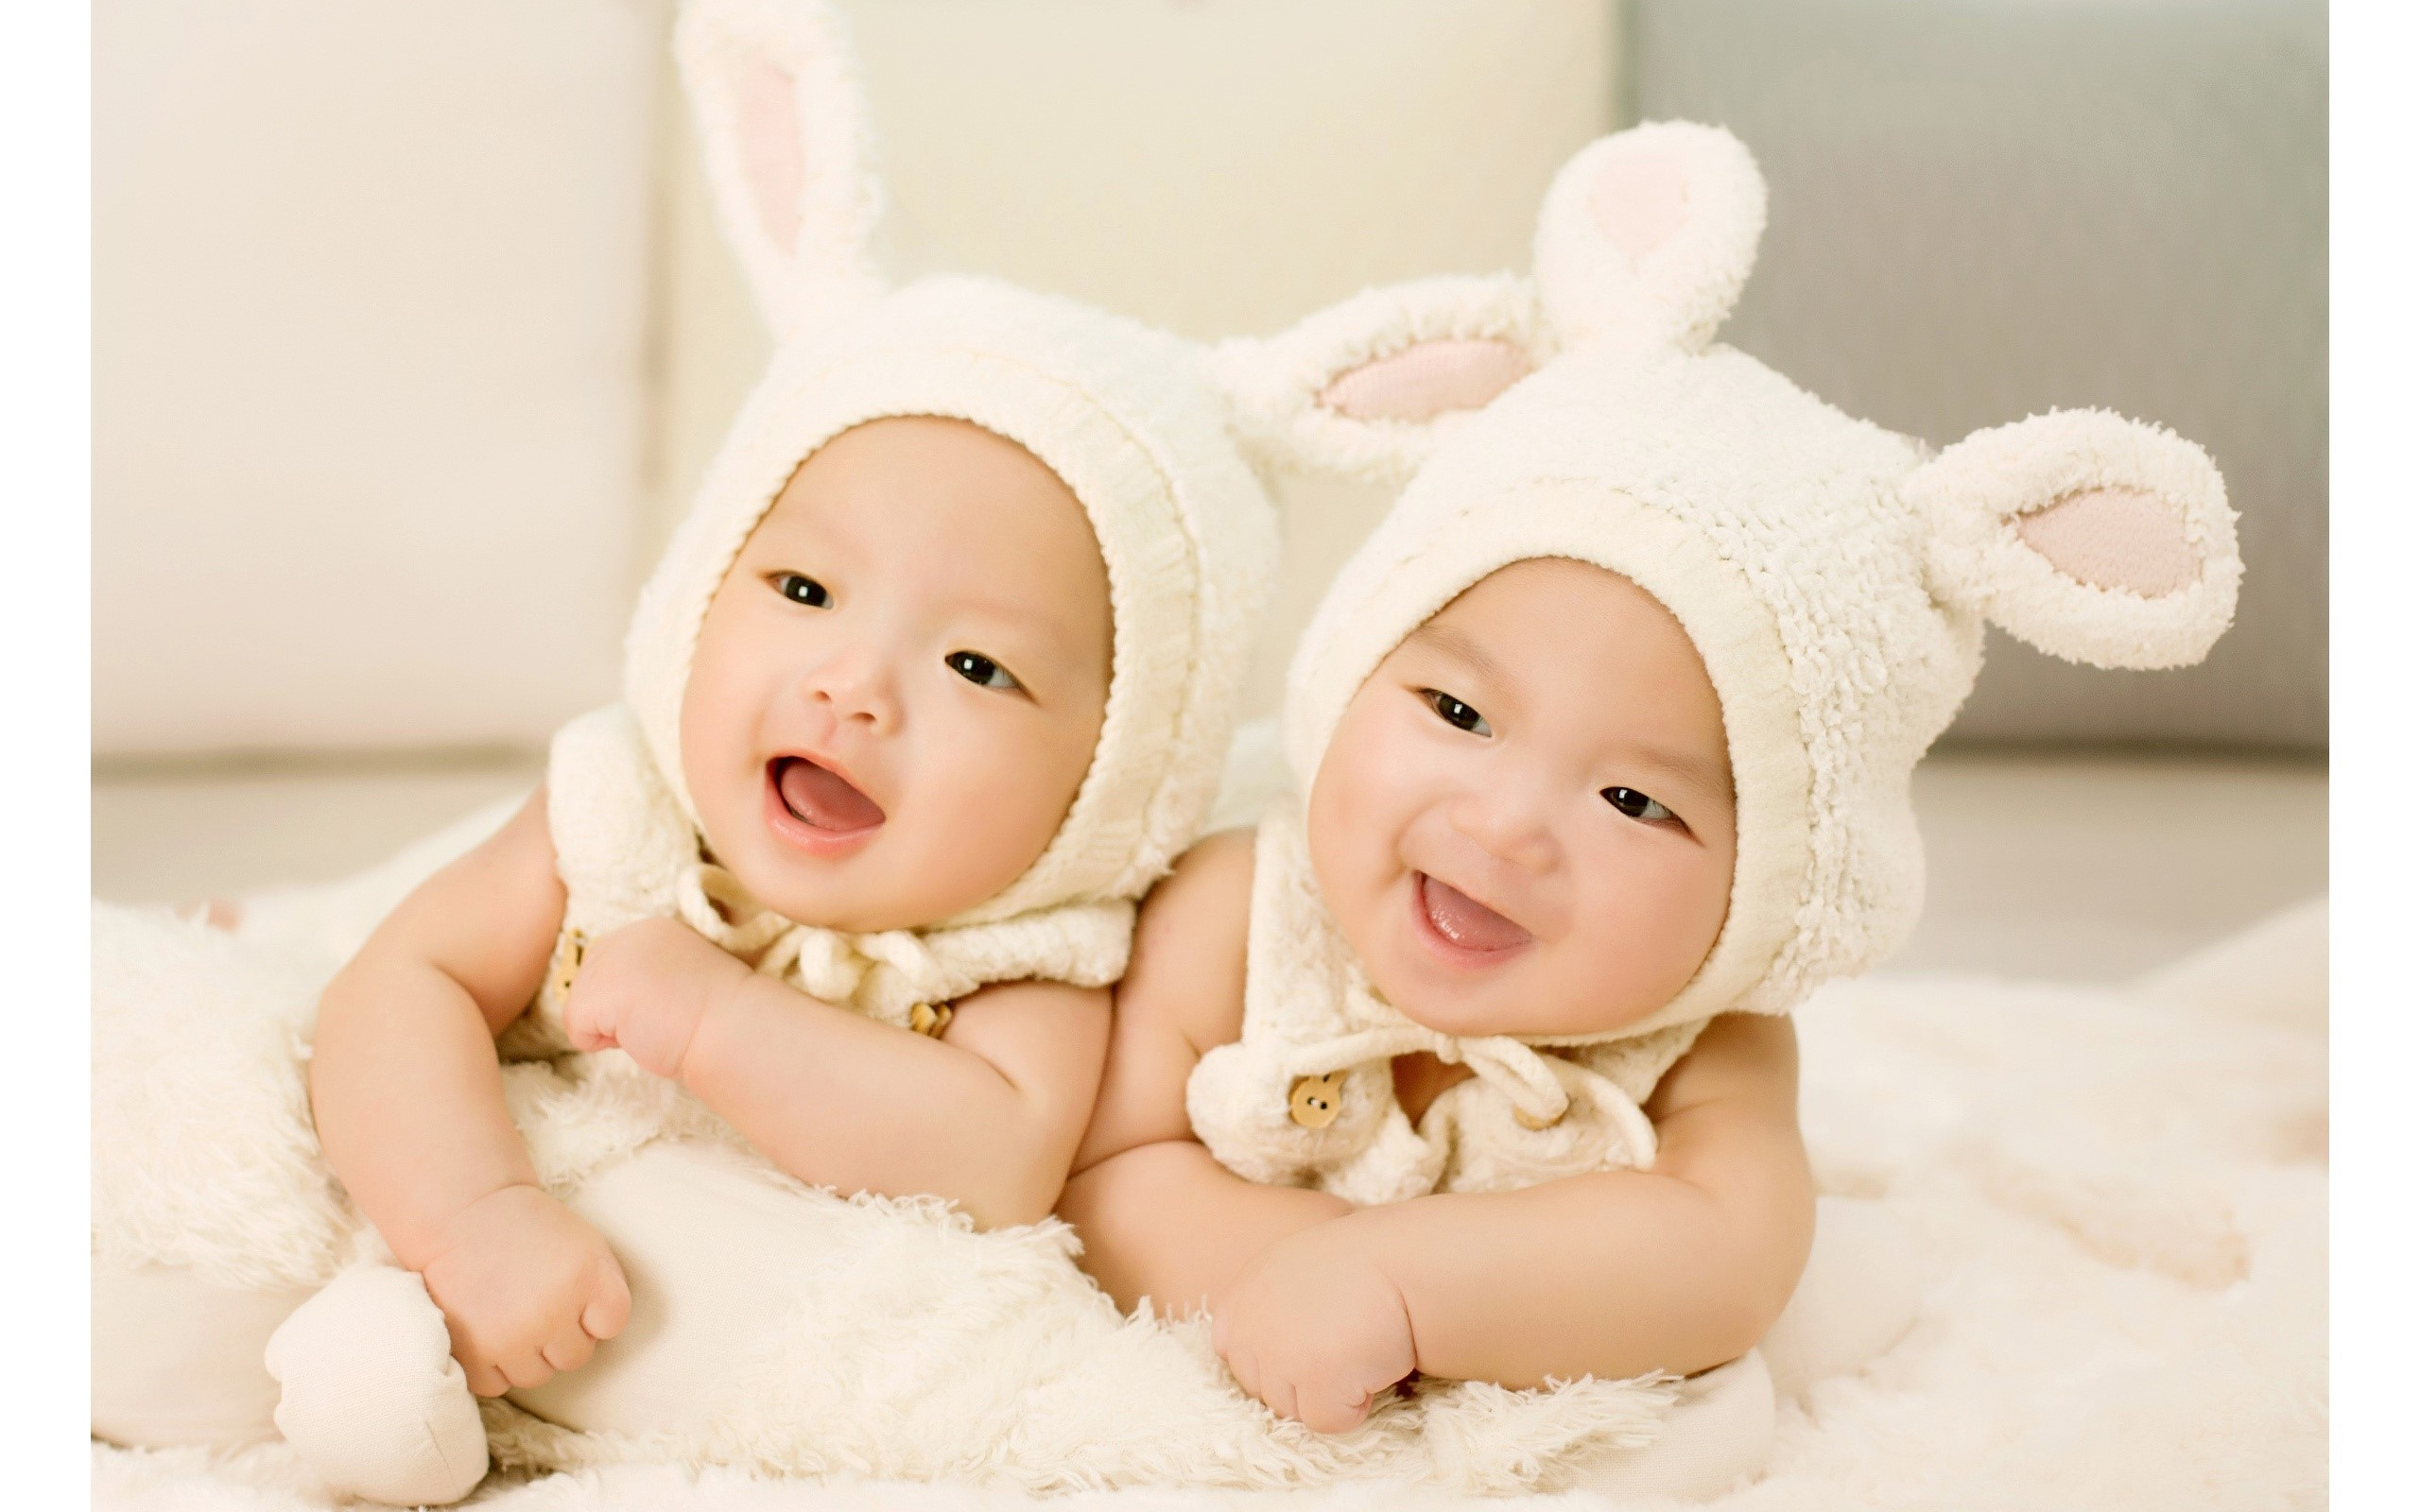 Wallpaper Twins dressed as rabbits